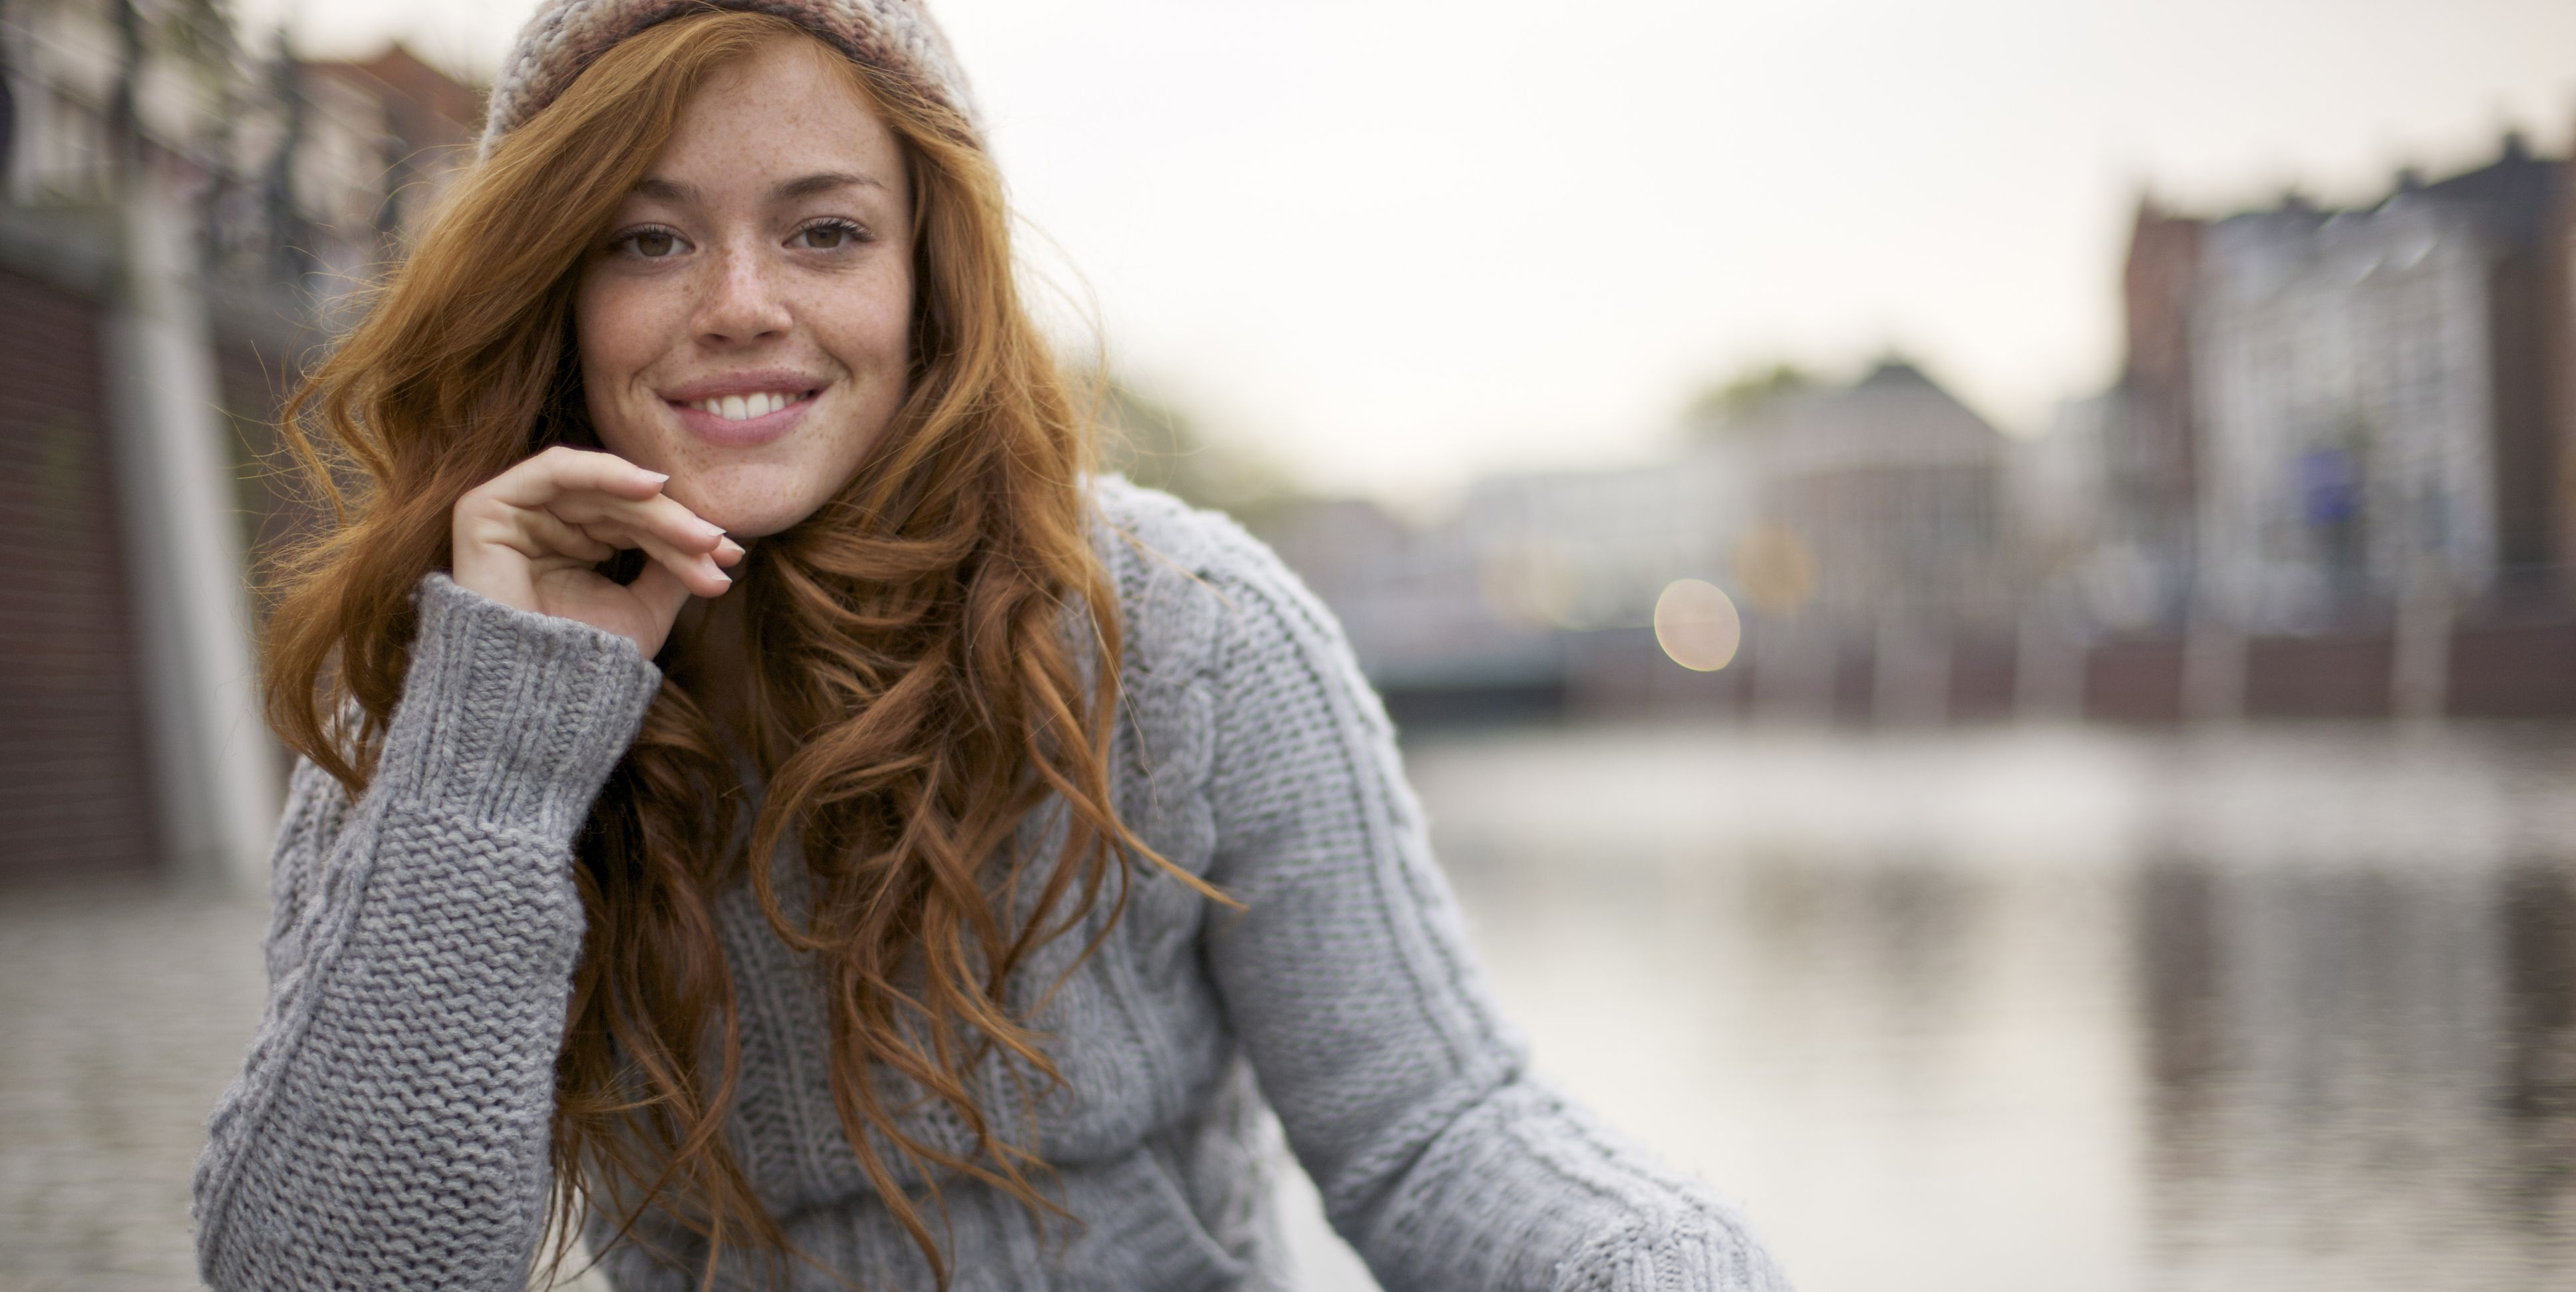 Young Redheaded Woman in a Grey Knit Jumper at the Canal